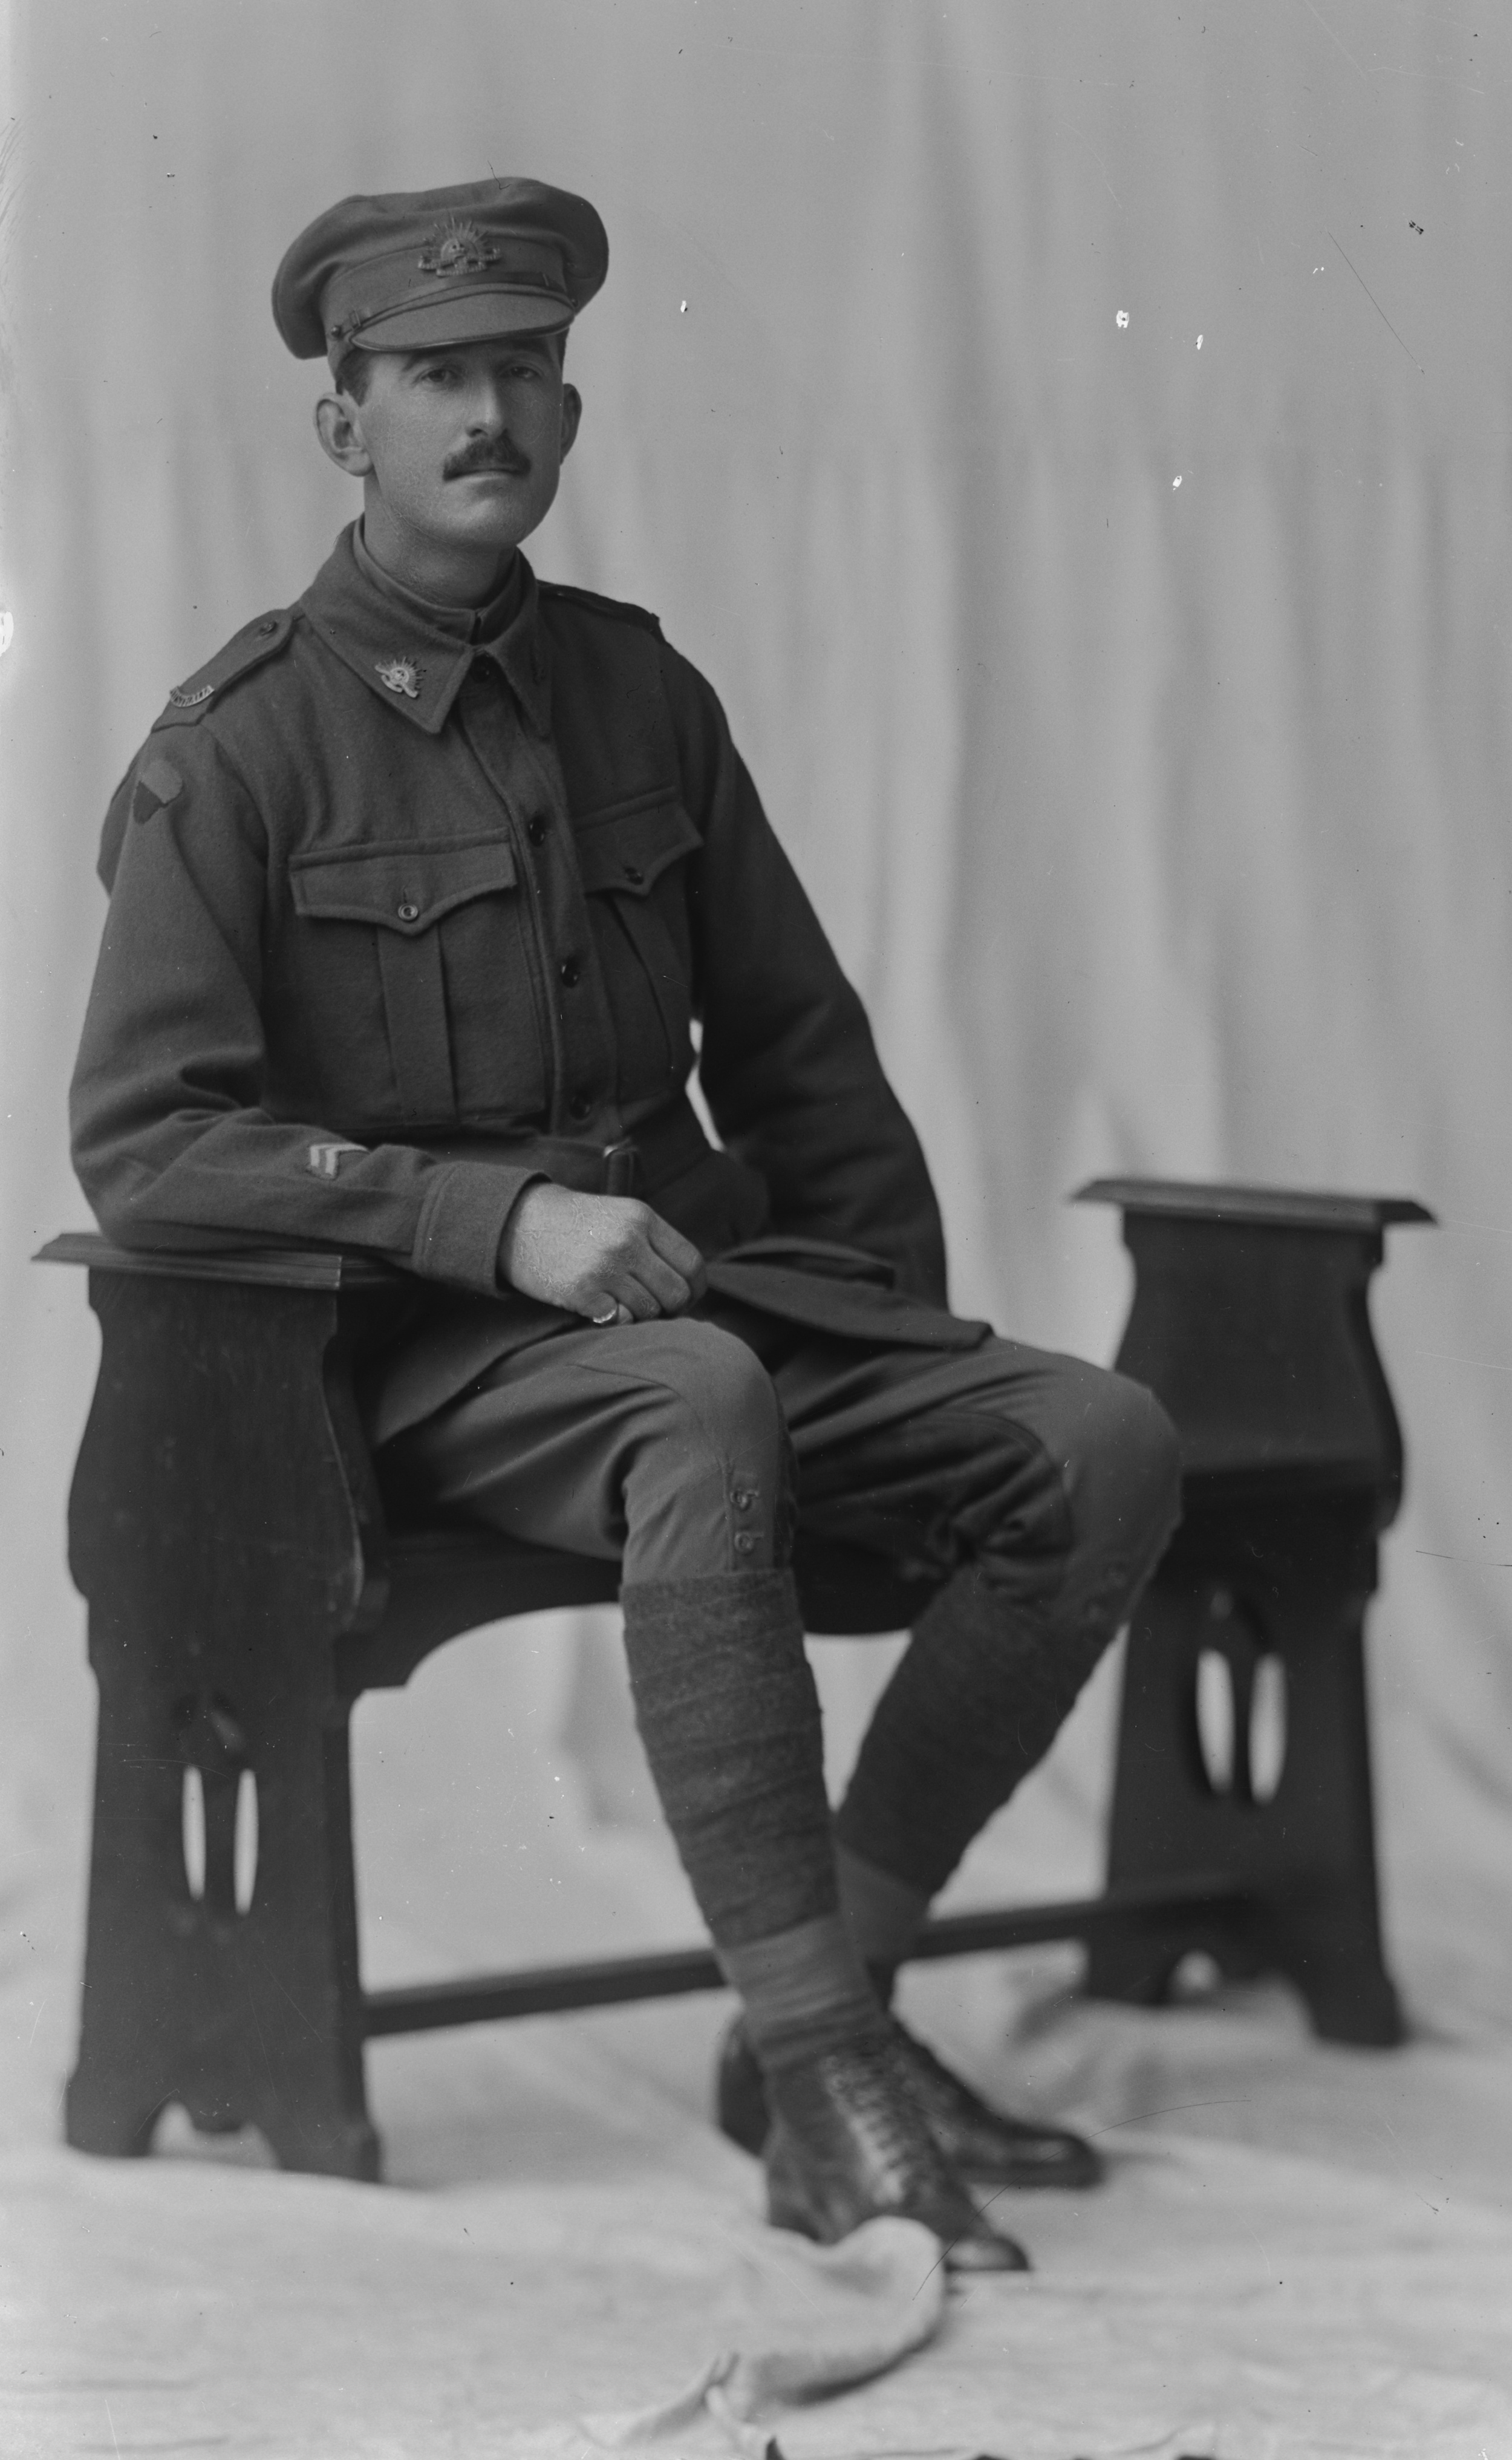 Photographed at the Dease Studio, 117 Barrack Street Perth WA Image courtesy of the State Library of Western Australia: 108533PD